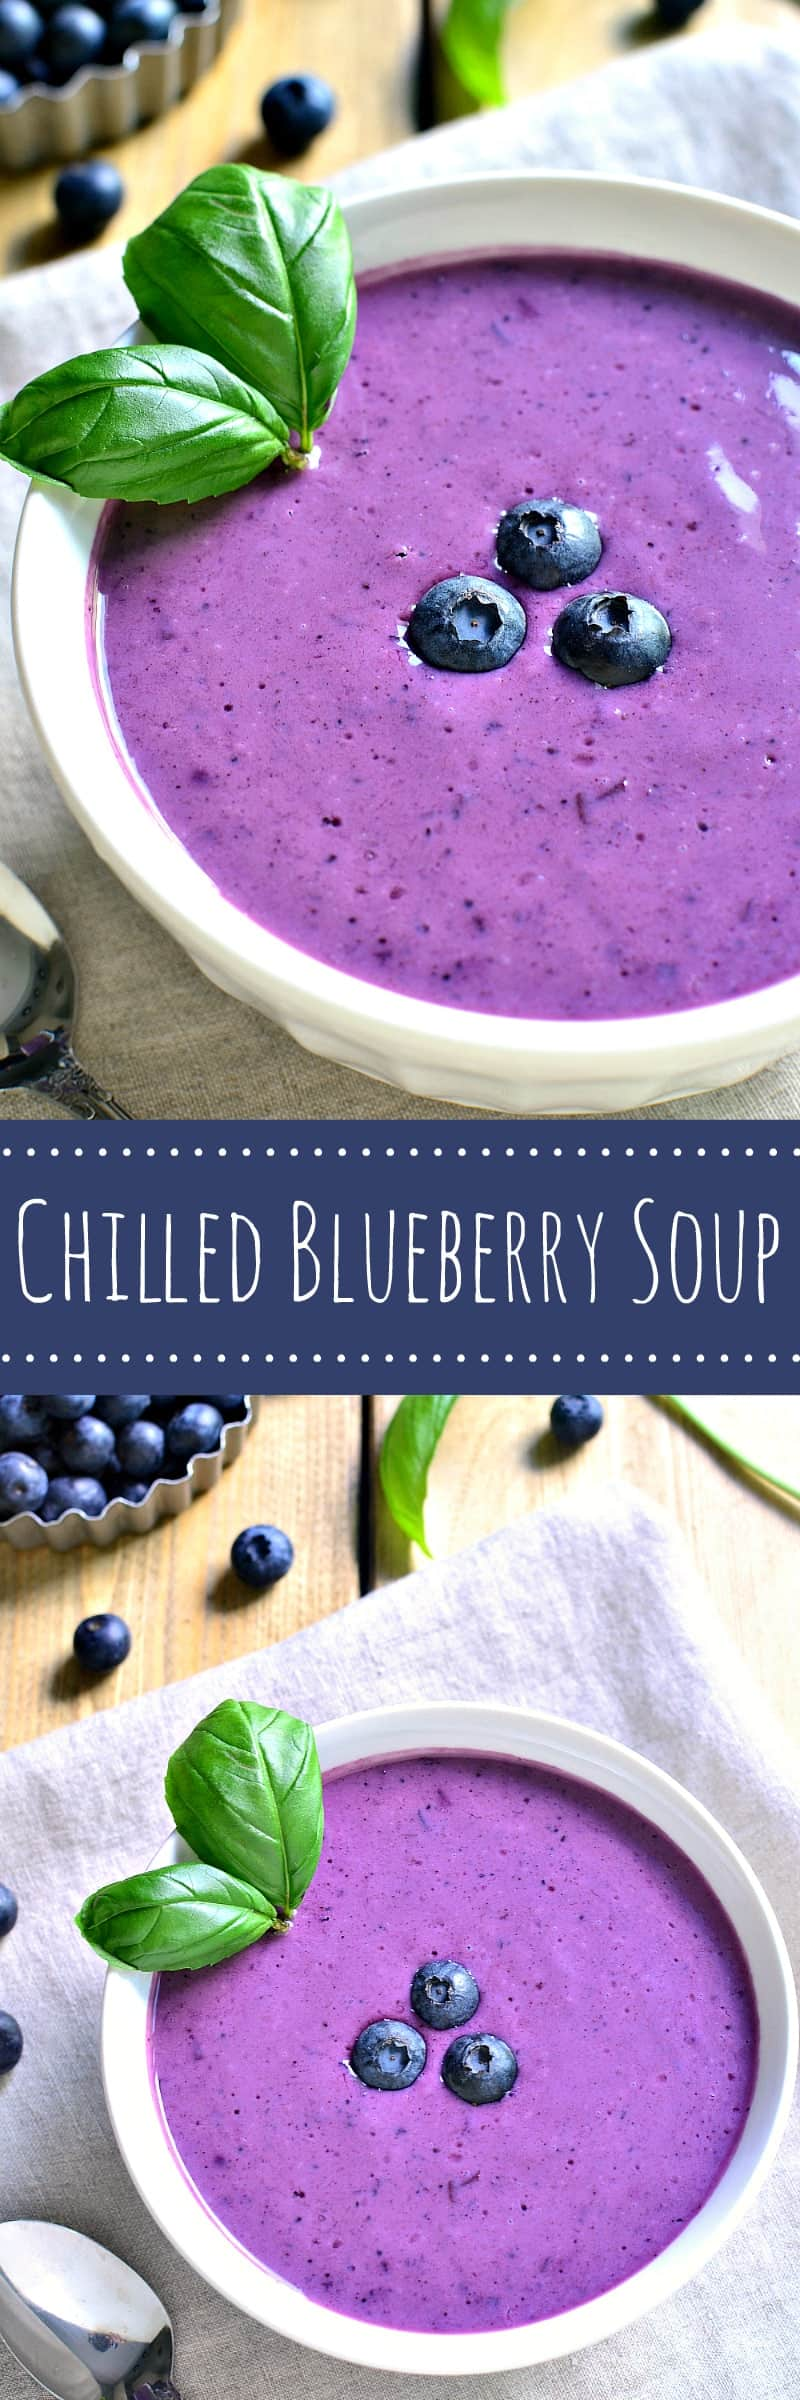 This Chilled Blueberry Soup makes the most of fresh summer blueberries and offers a surprising pop of flavor! Perfect for brunch with the ladies or a simple weekend lunch, this soup is as delicious as it is beautiful.....and sure to impress!